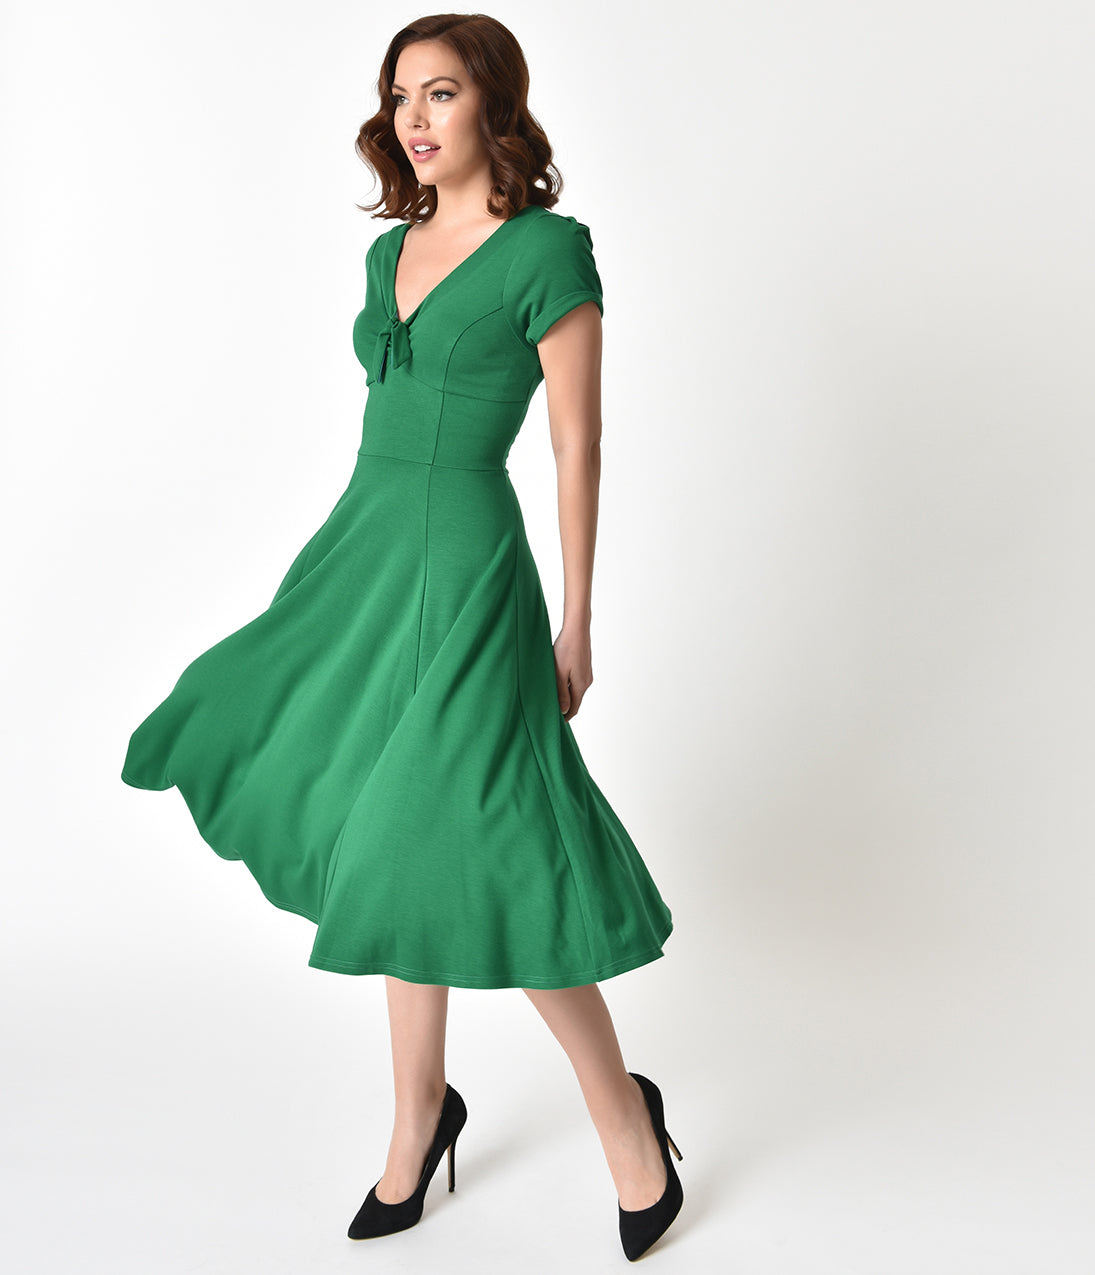 Vintage Tea Dresses, Floral Tea Dresses, Tea Length Dresses Unique Vintage 1940S Style Green Knit Short Sleeve Natalie Swing Dress $78.00 AT vintagedancer.com